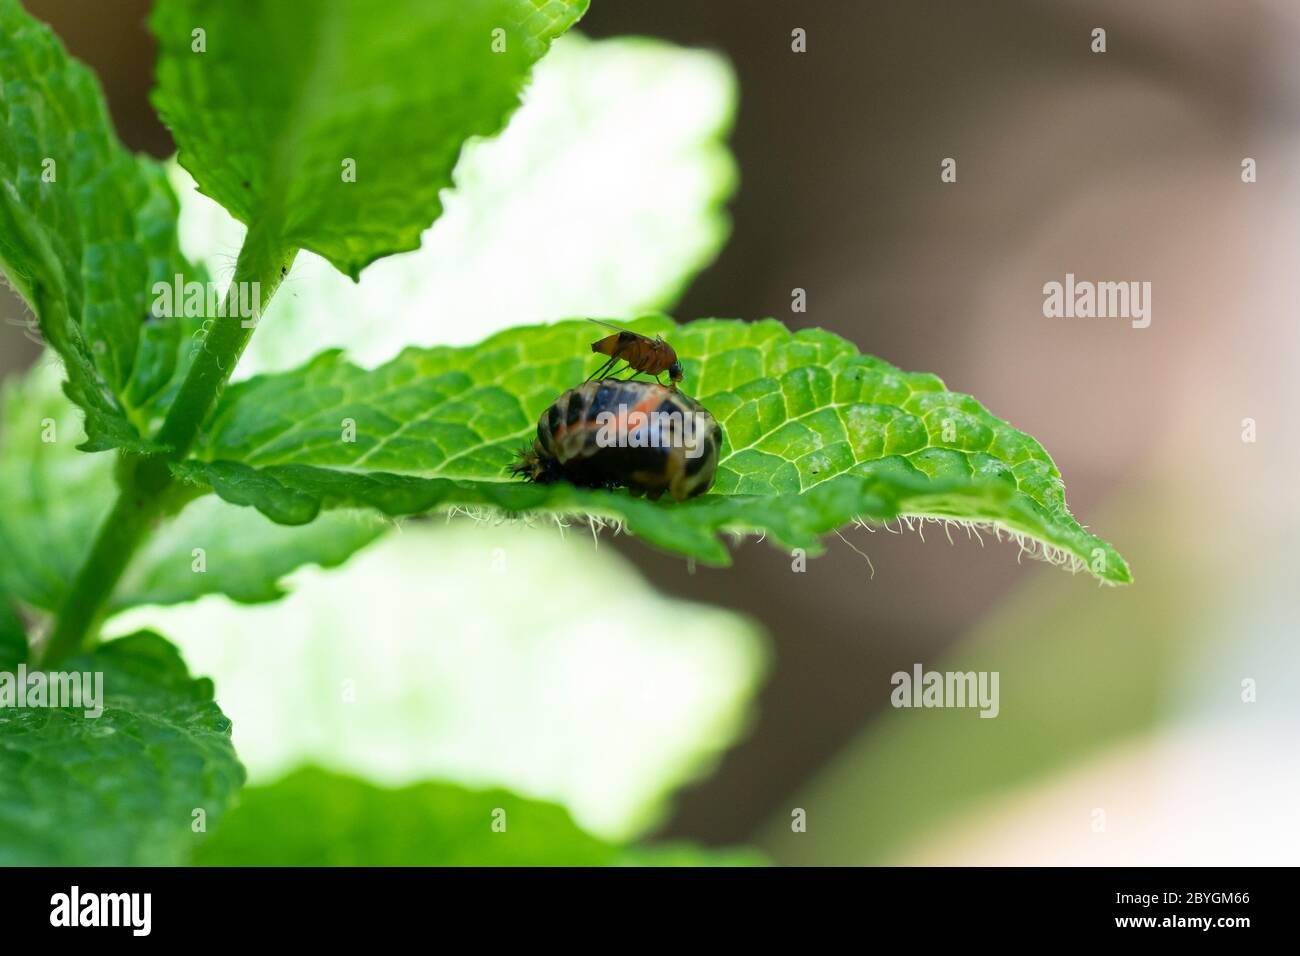 Pupation of a ladybug on a mint leaf in spring with a mosquito on it. Macro shot of living insect. Series image 8 of 9 Stock Photo